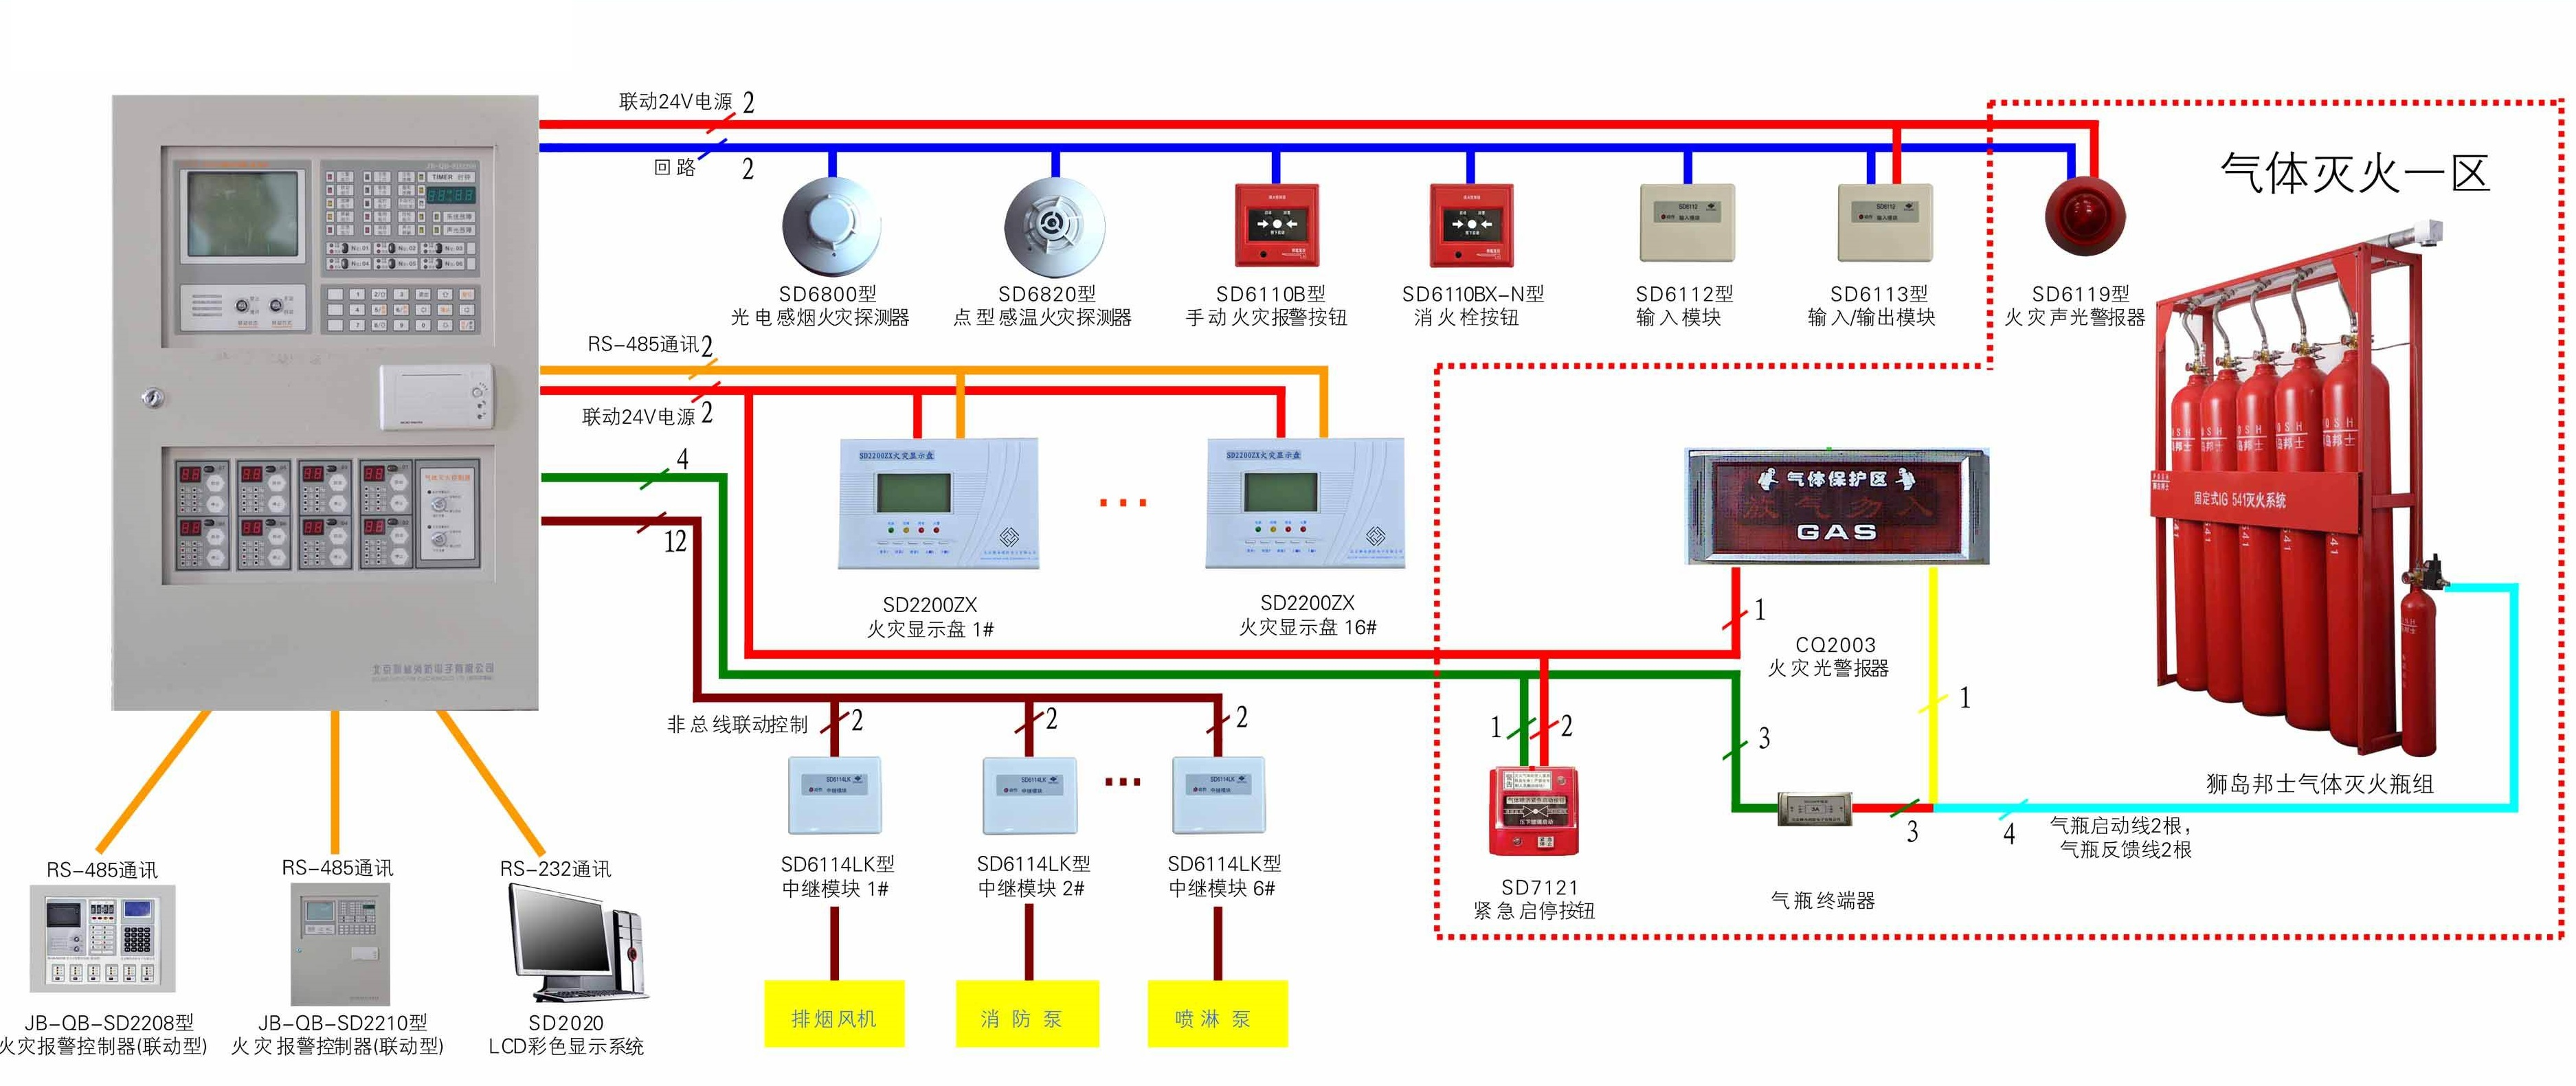 fire alarm controller karr alarm 2040 wiring diagram wiring diagram and schematic design karr 2040a wiring diagram at suagrazia.org